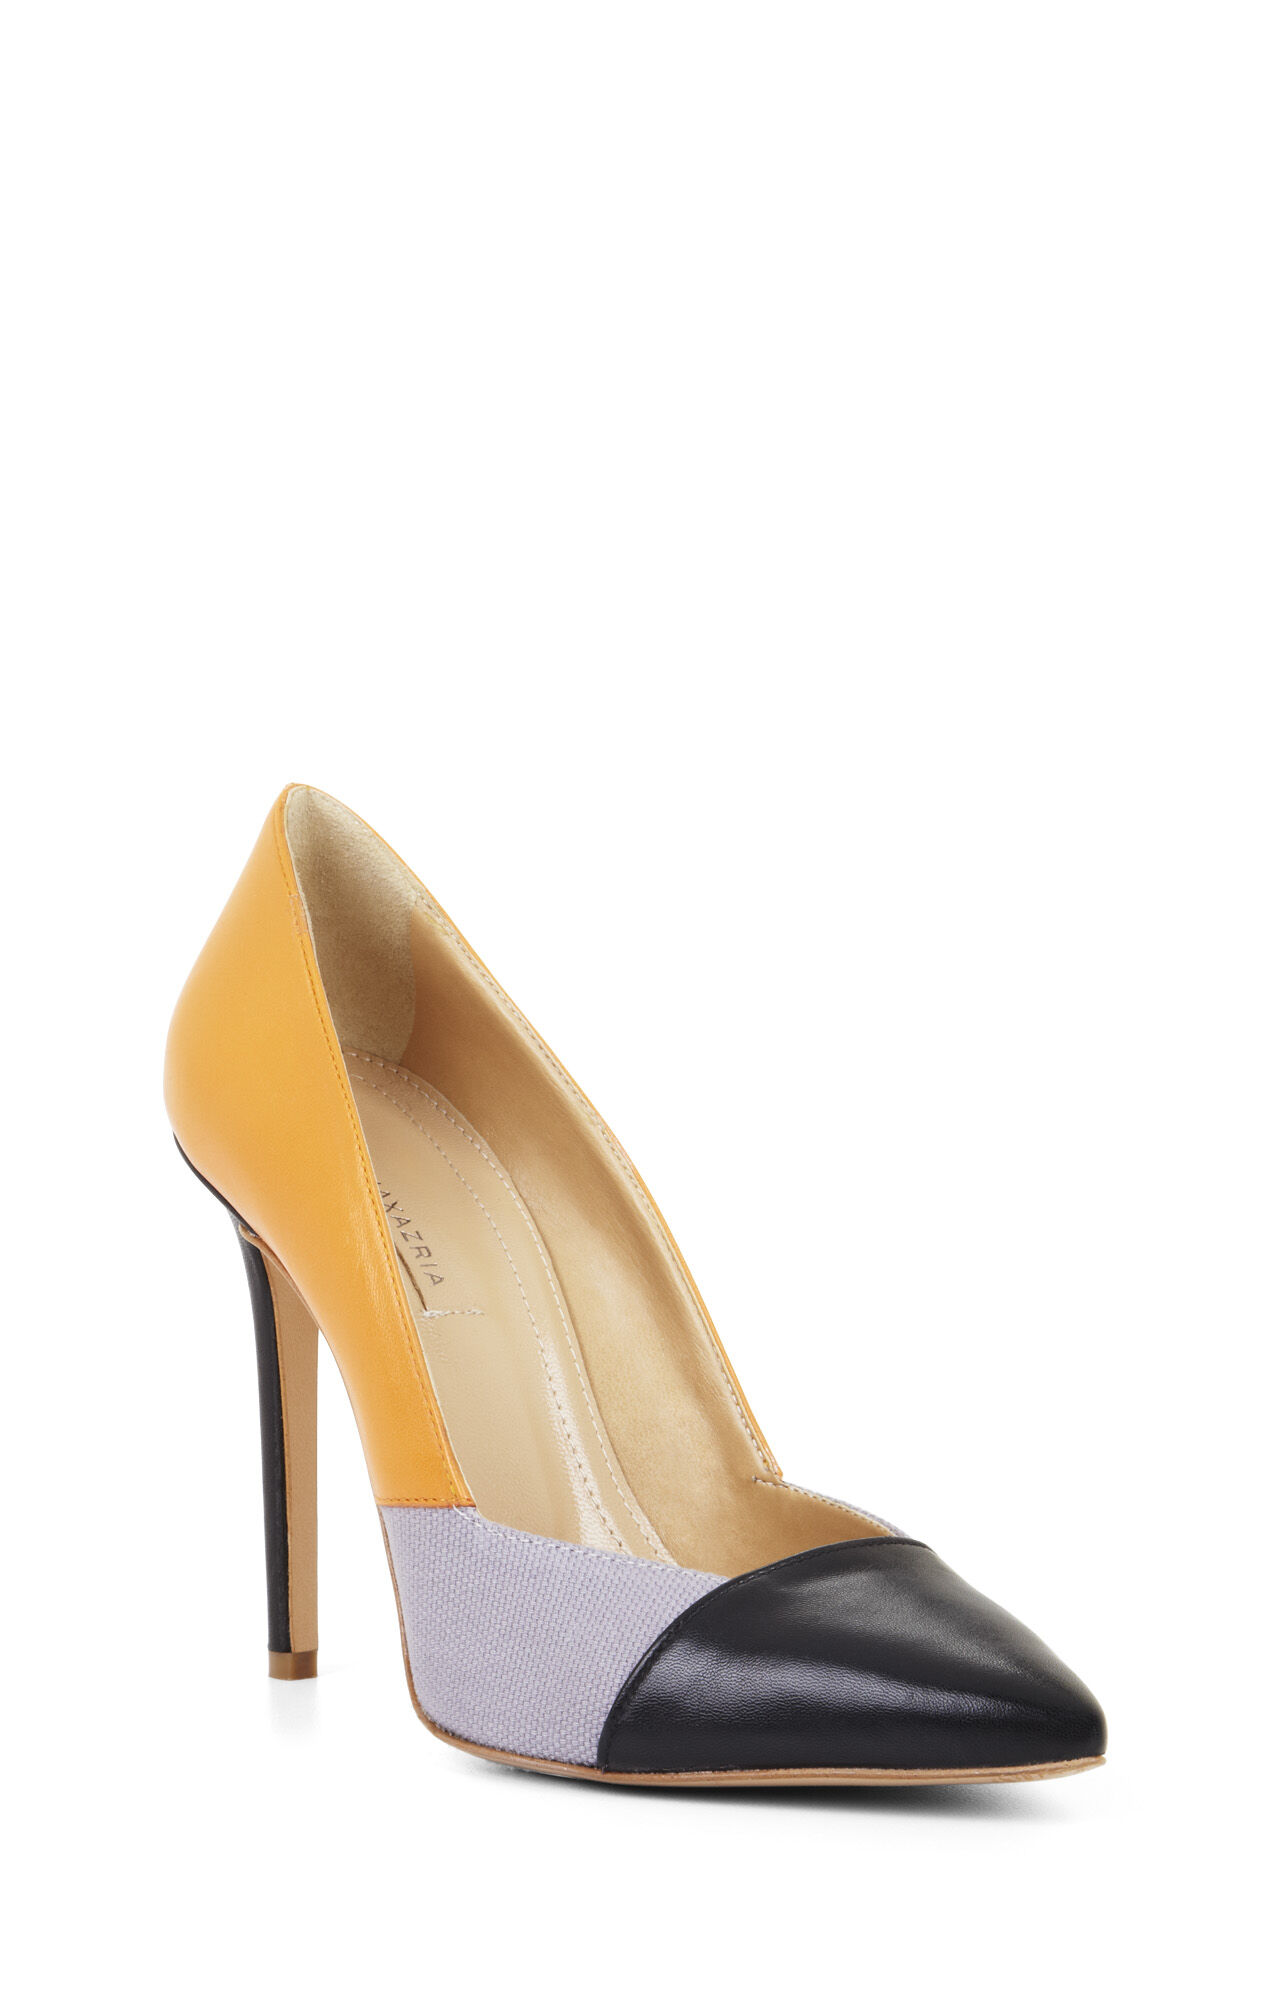 High-Heel Pointed-Toe Leather Pump